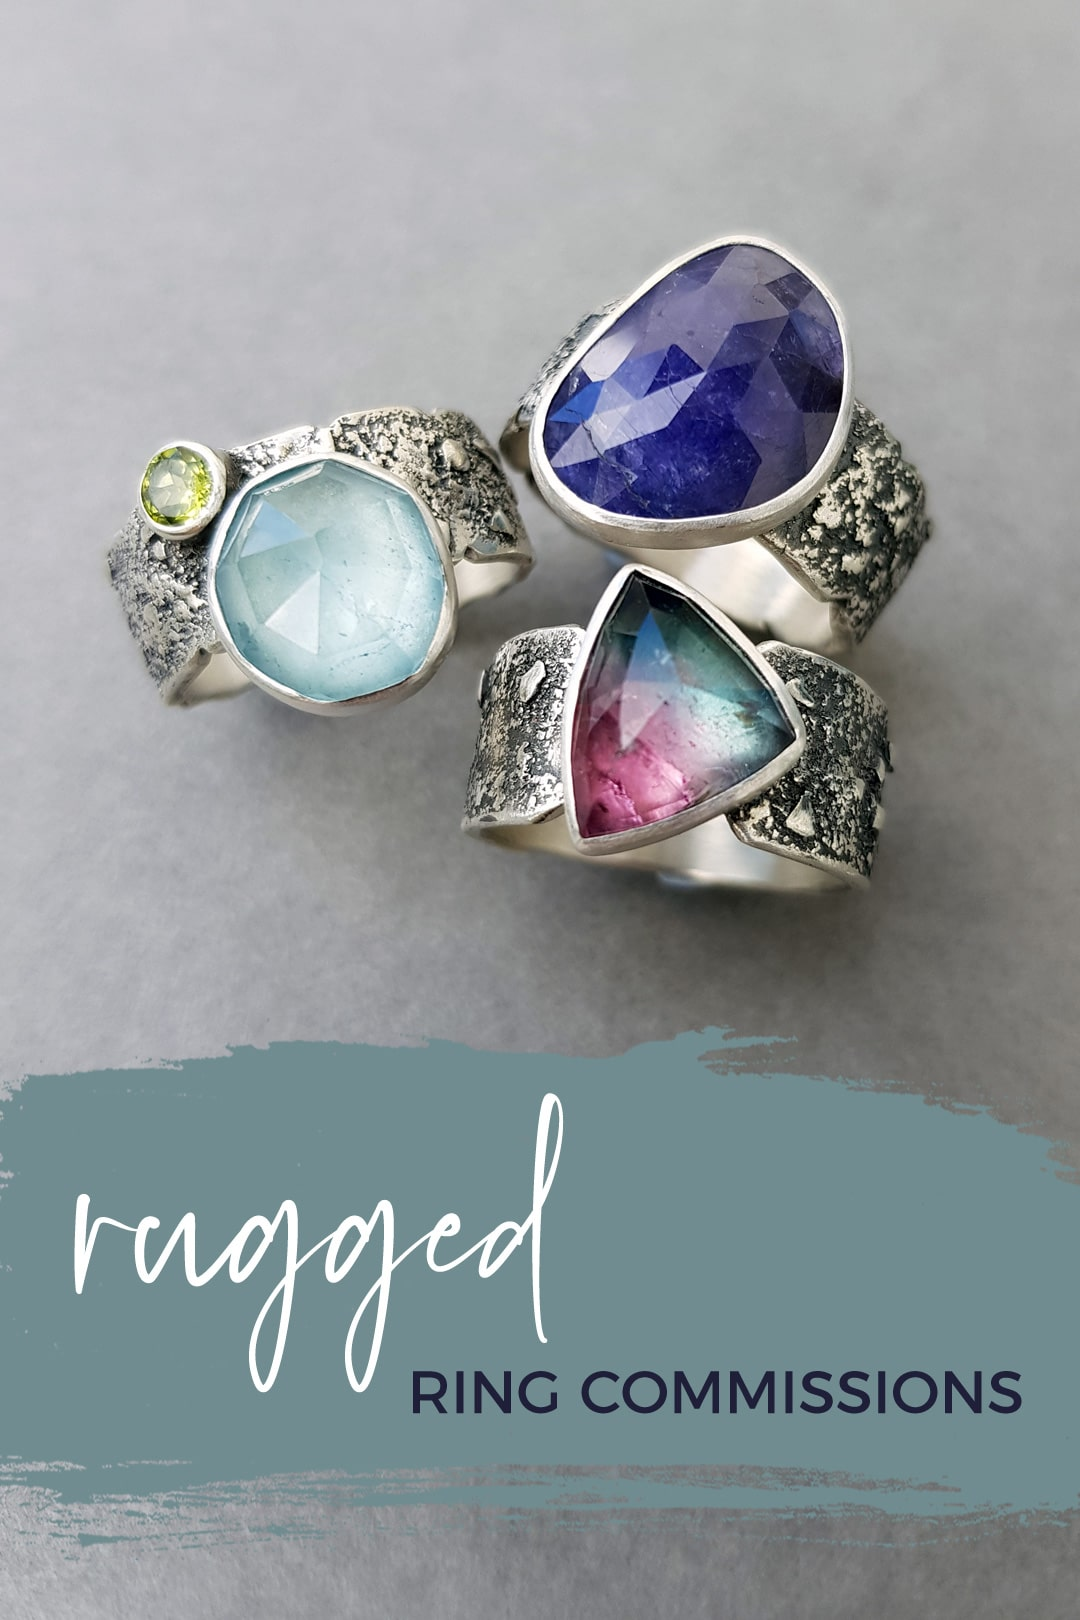 Rugged ring commissions; textured silver and gemstones